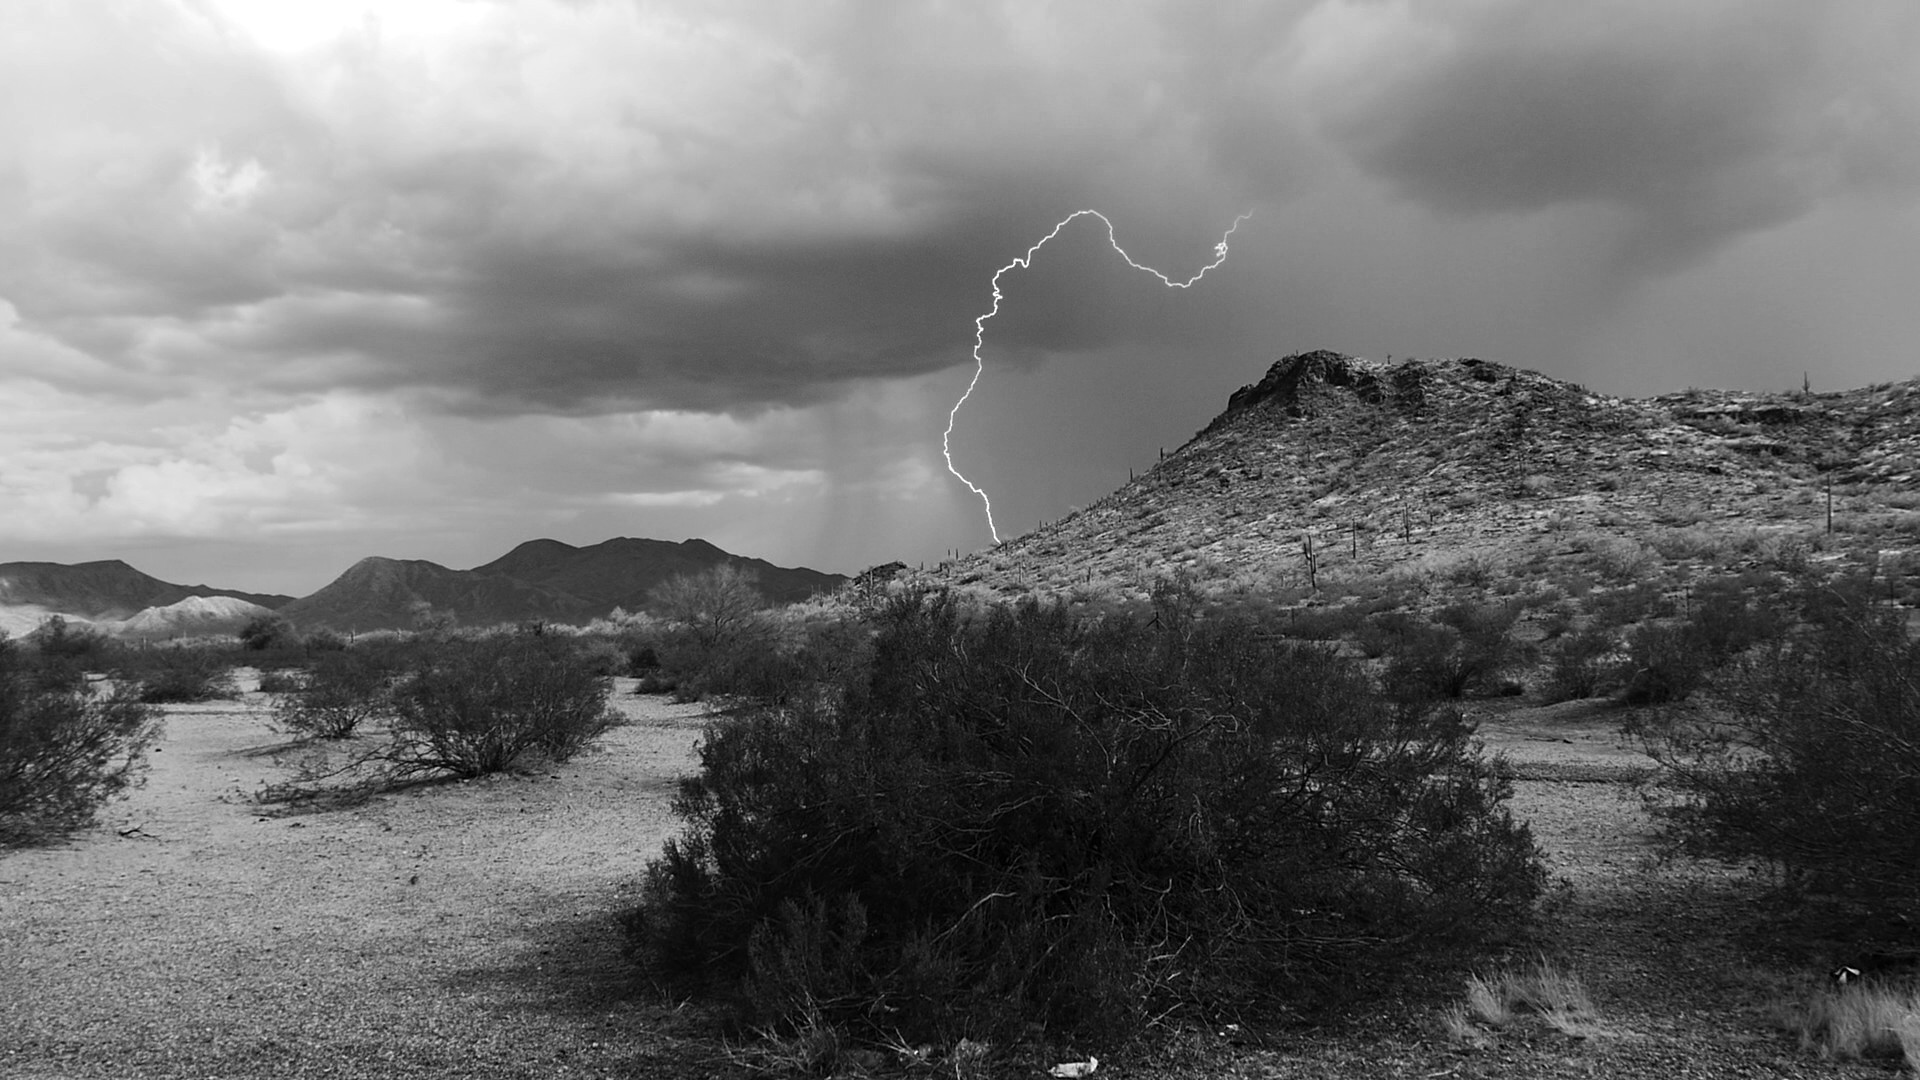 Black and white landscape photo of desert mountain range, brush, rainclouds and a bolt of lightning.